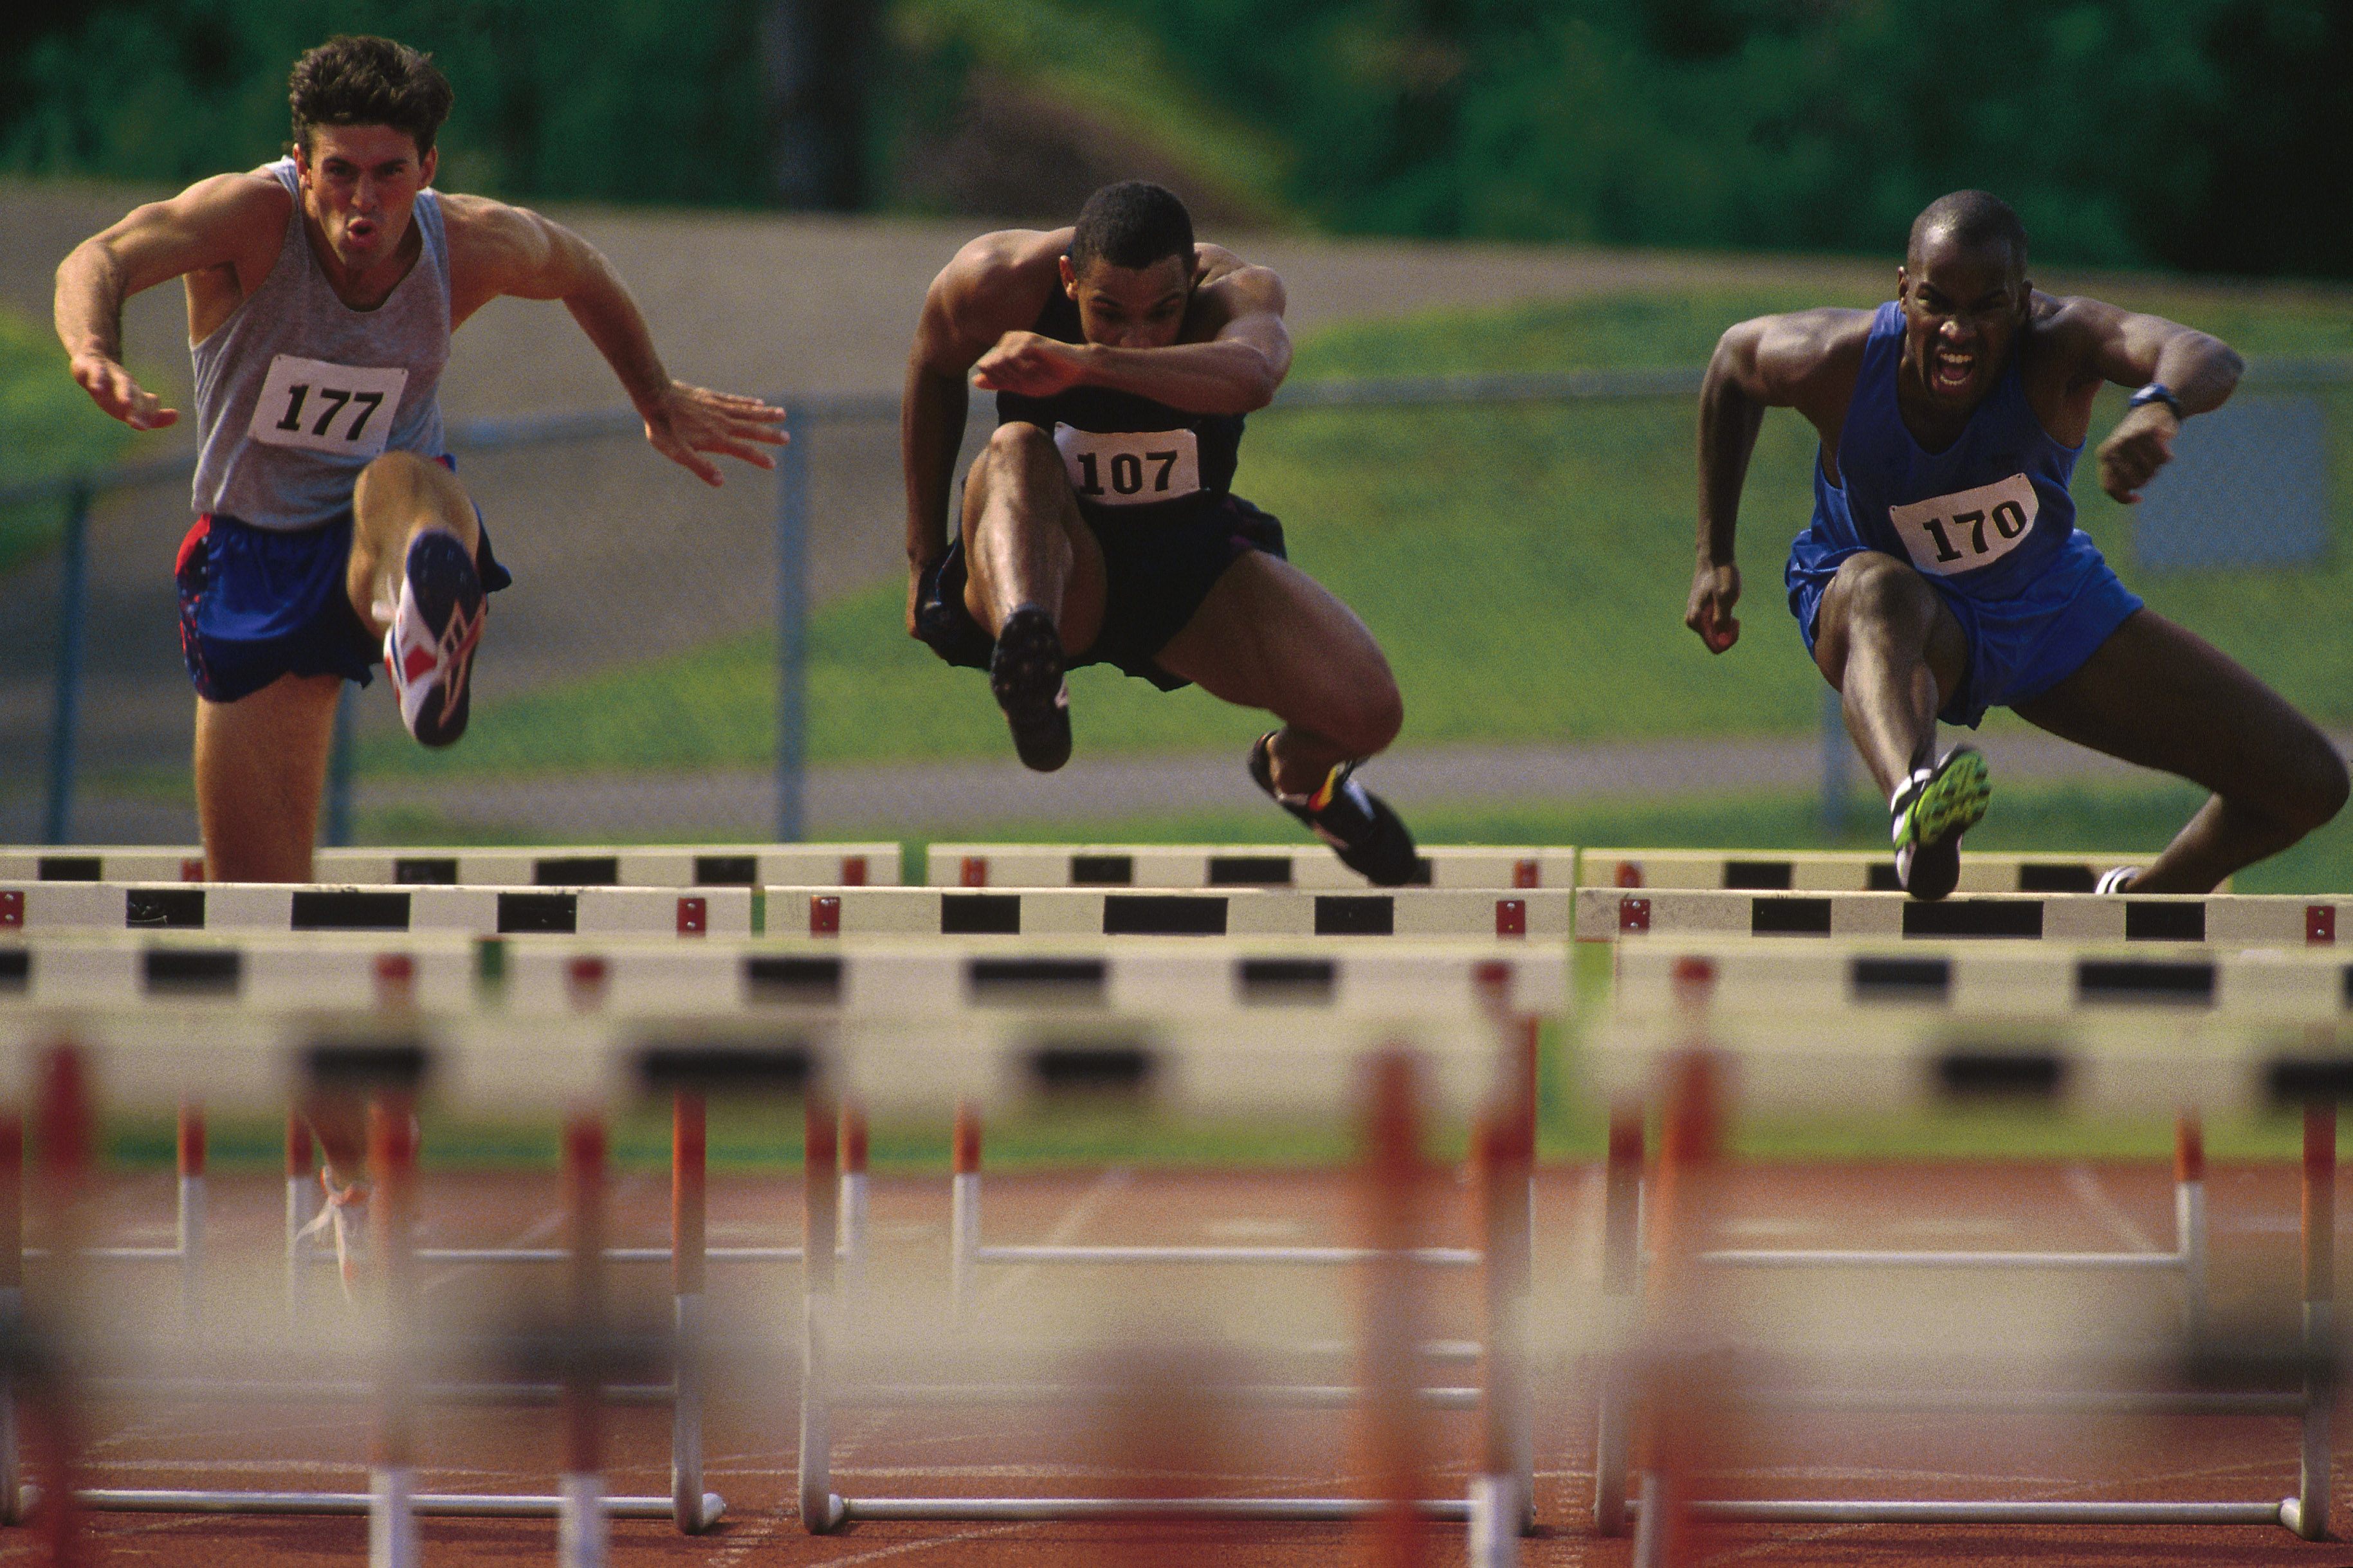 With the pressures of competition, young athletes overcome hurdles both emotionally and physically